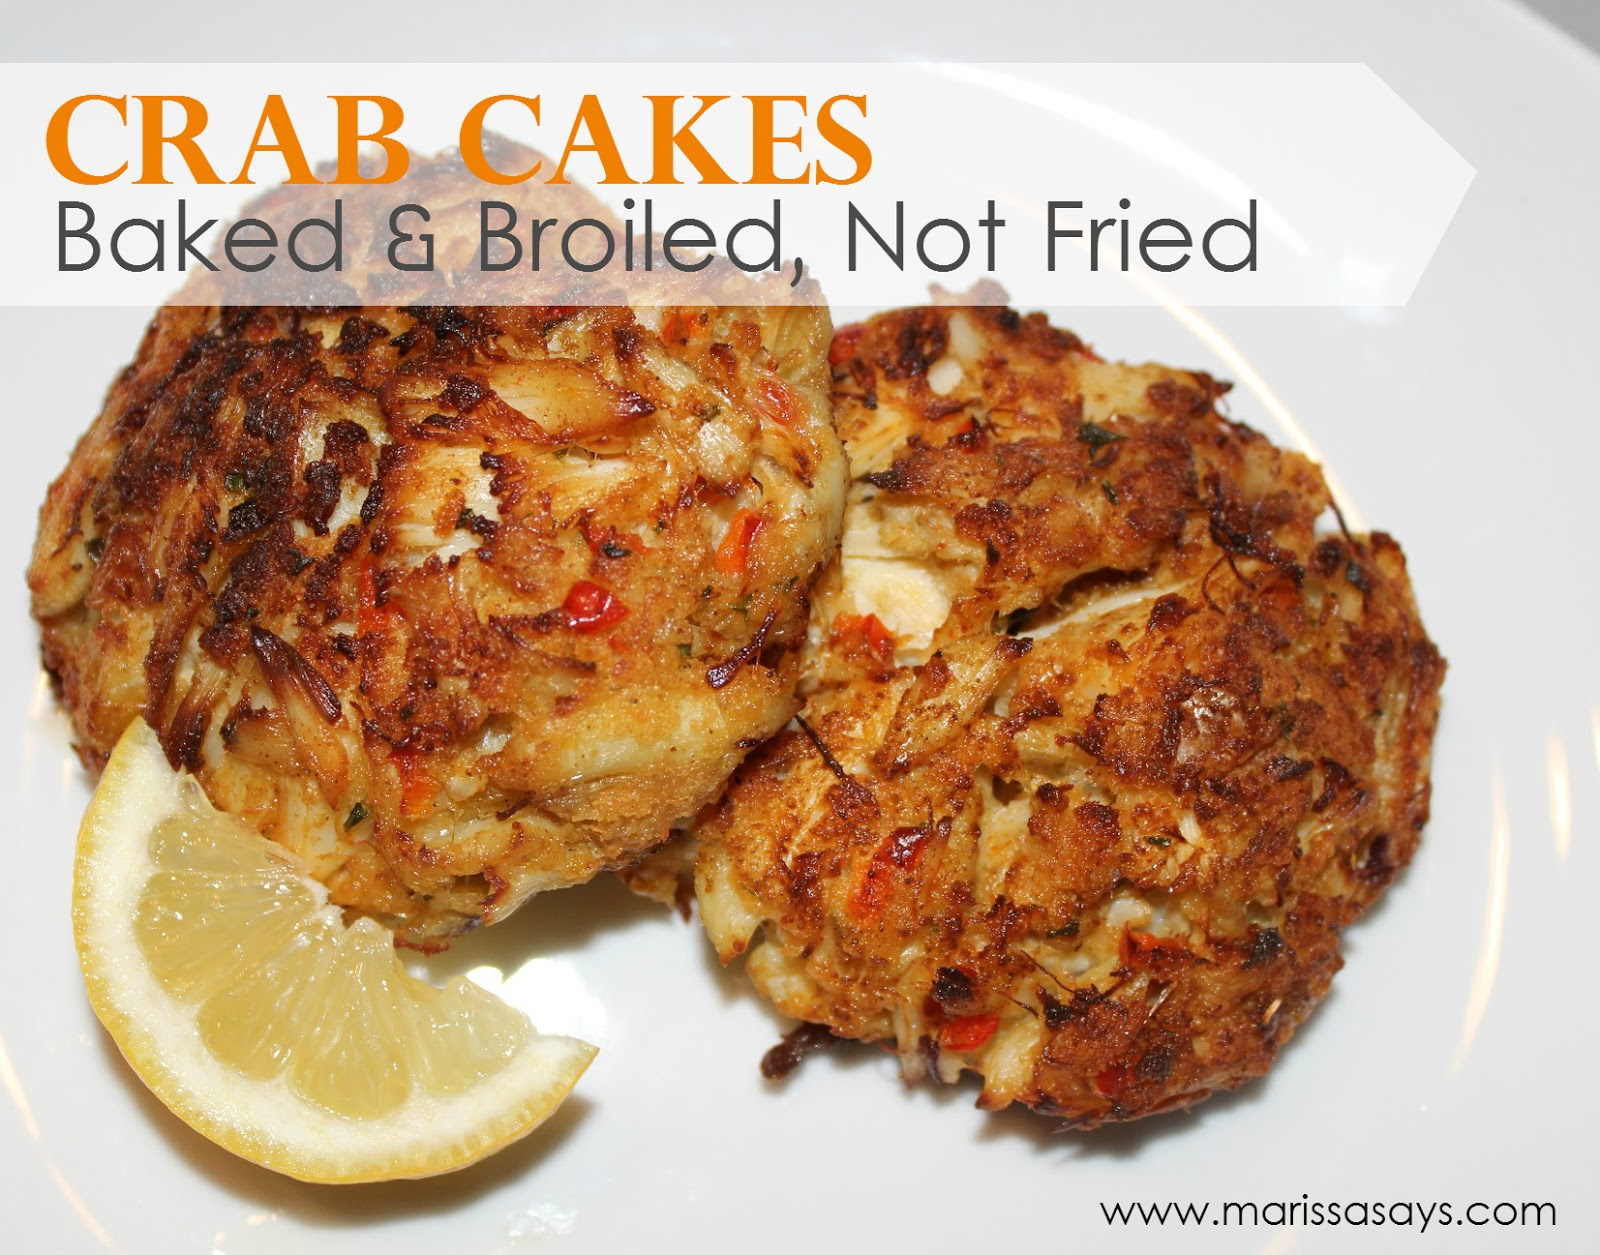 How To Make Healthy Crab Cakes